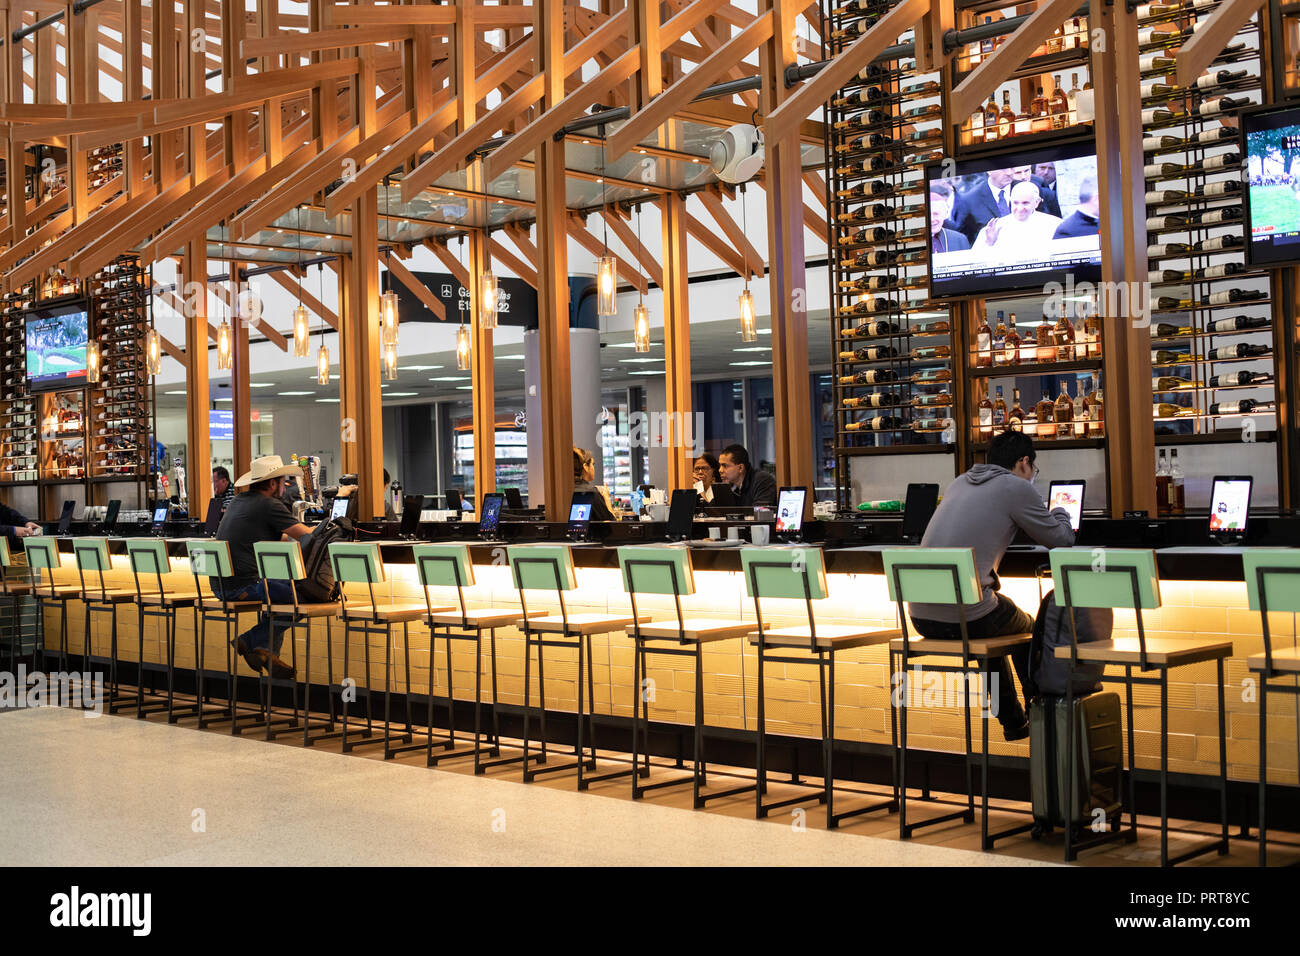 Iah Stock Photos & Iah Stock Images - Alamy